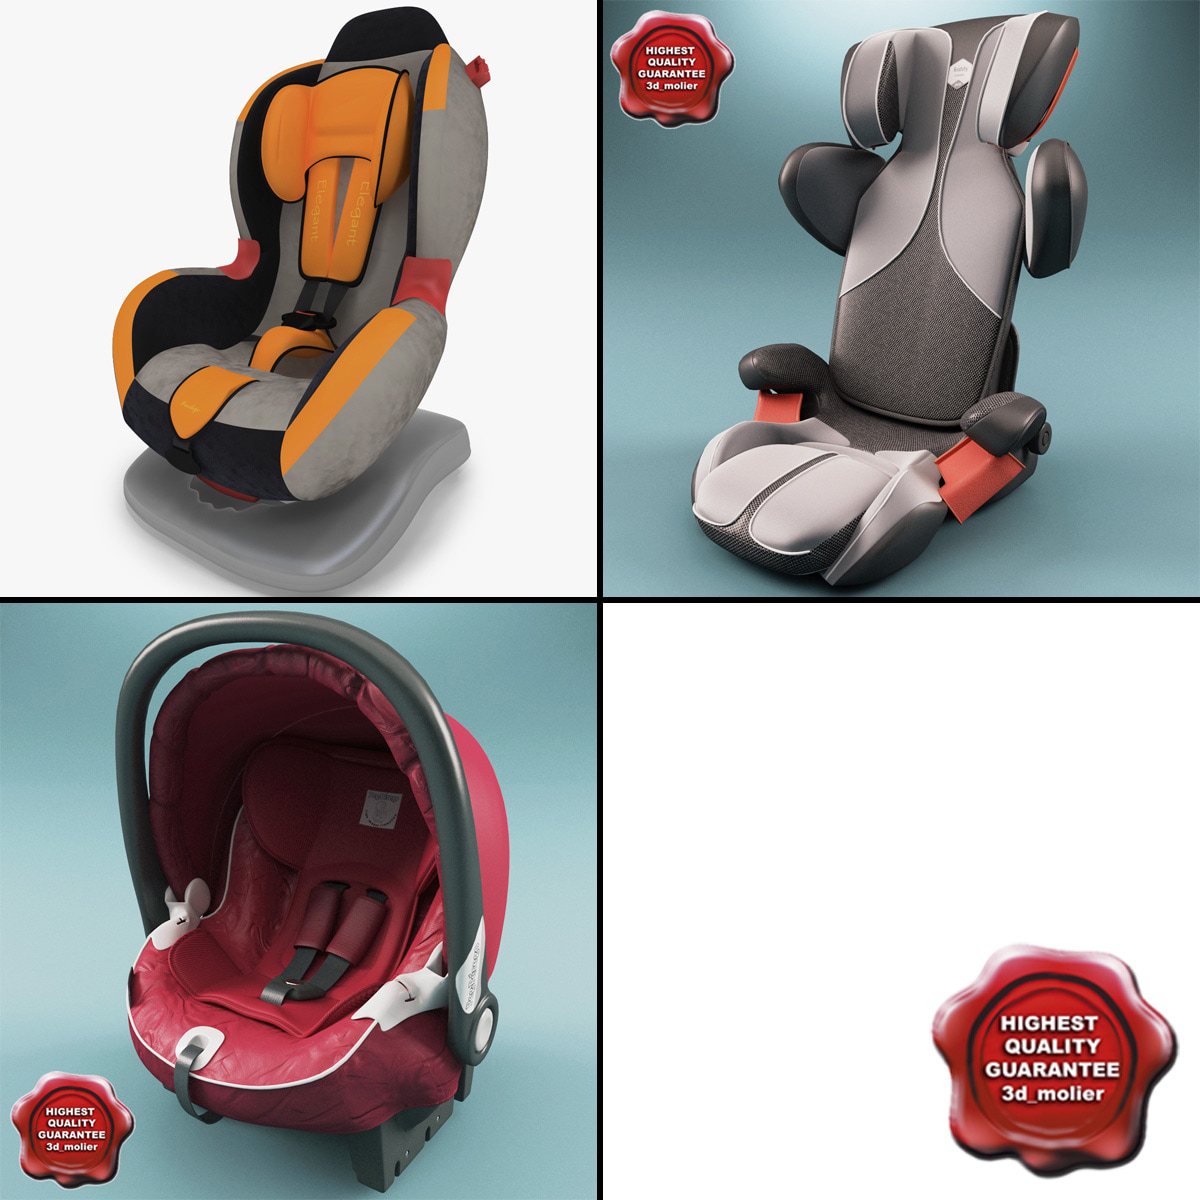 Kiddy_Car_Seats_Collection_v2_00.jpg